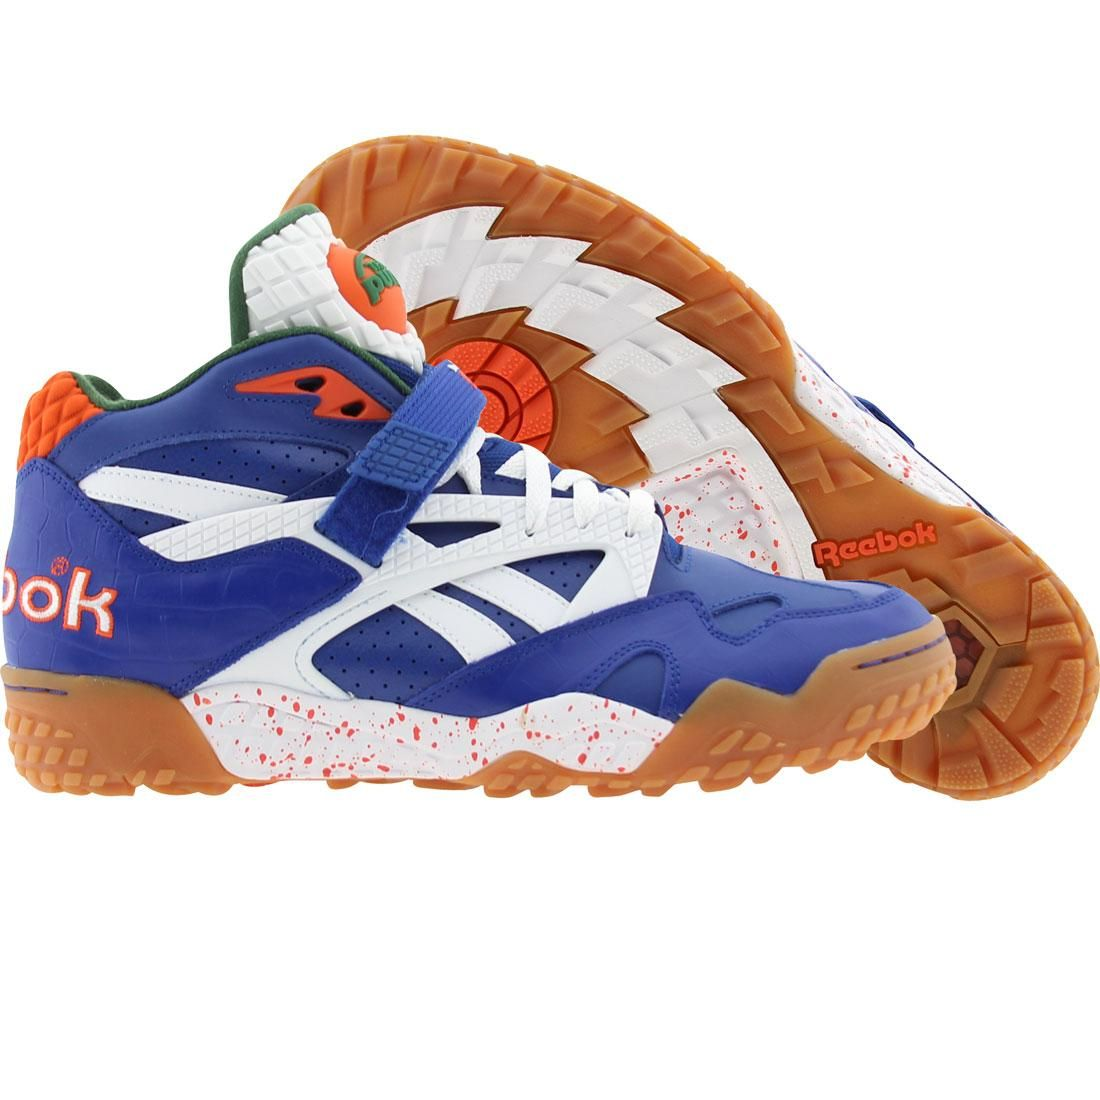 Reebok Men Pump Paydirt Mid (royal   green   white   orange) Shoes V60292 9597b7357